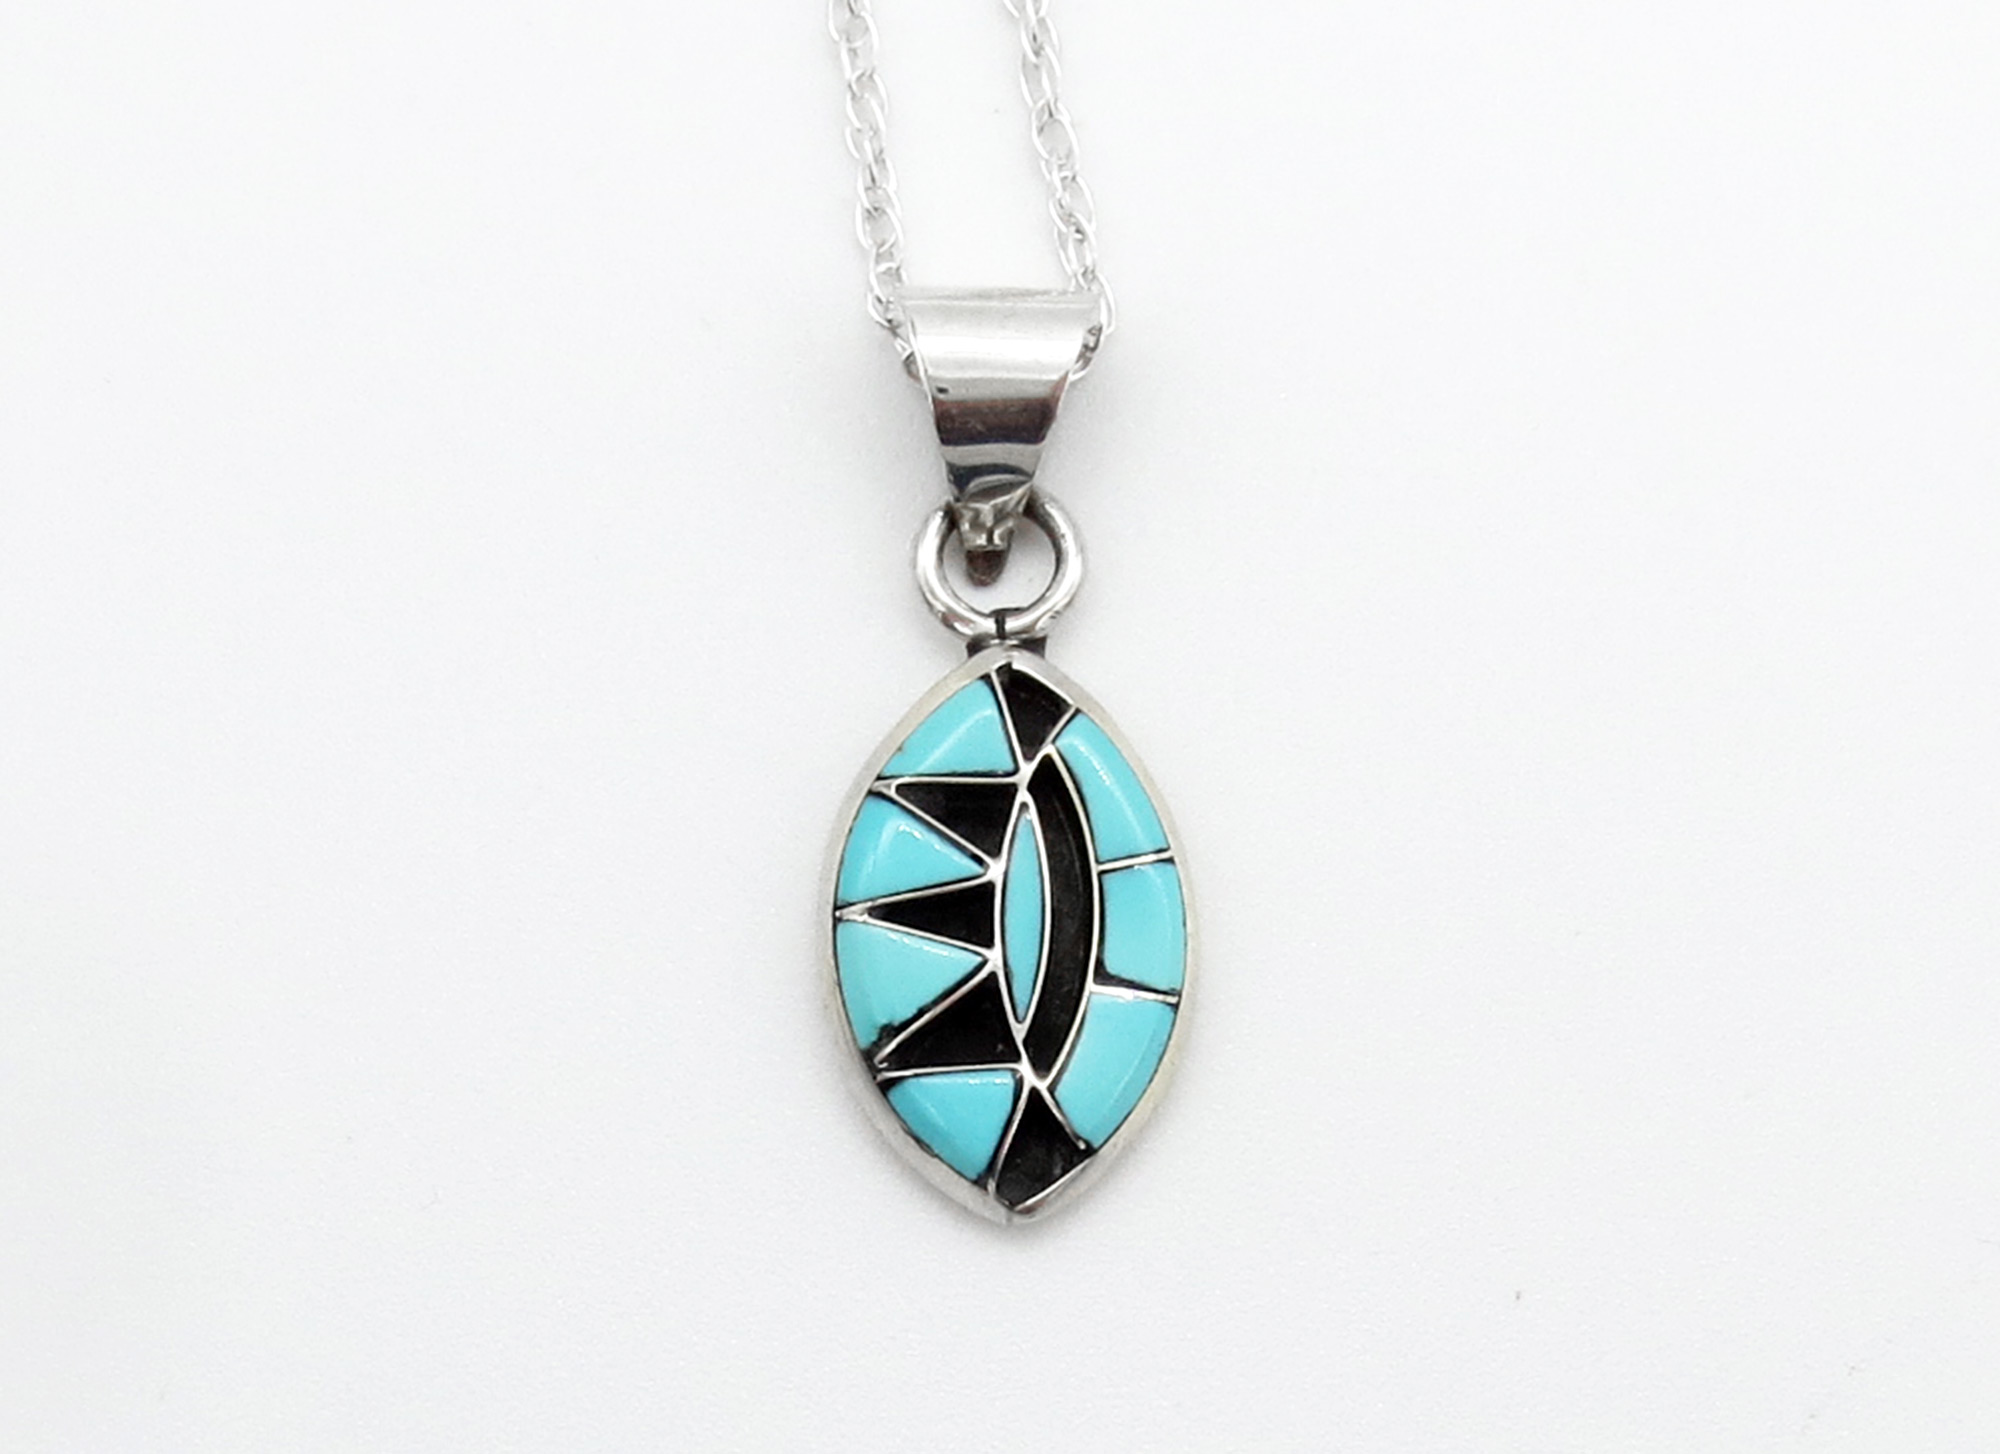 Small Turquoise Jet Inlay & Sterling Silver pendant Zuni Jewelry - 6248sn